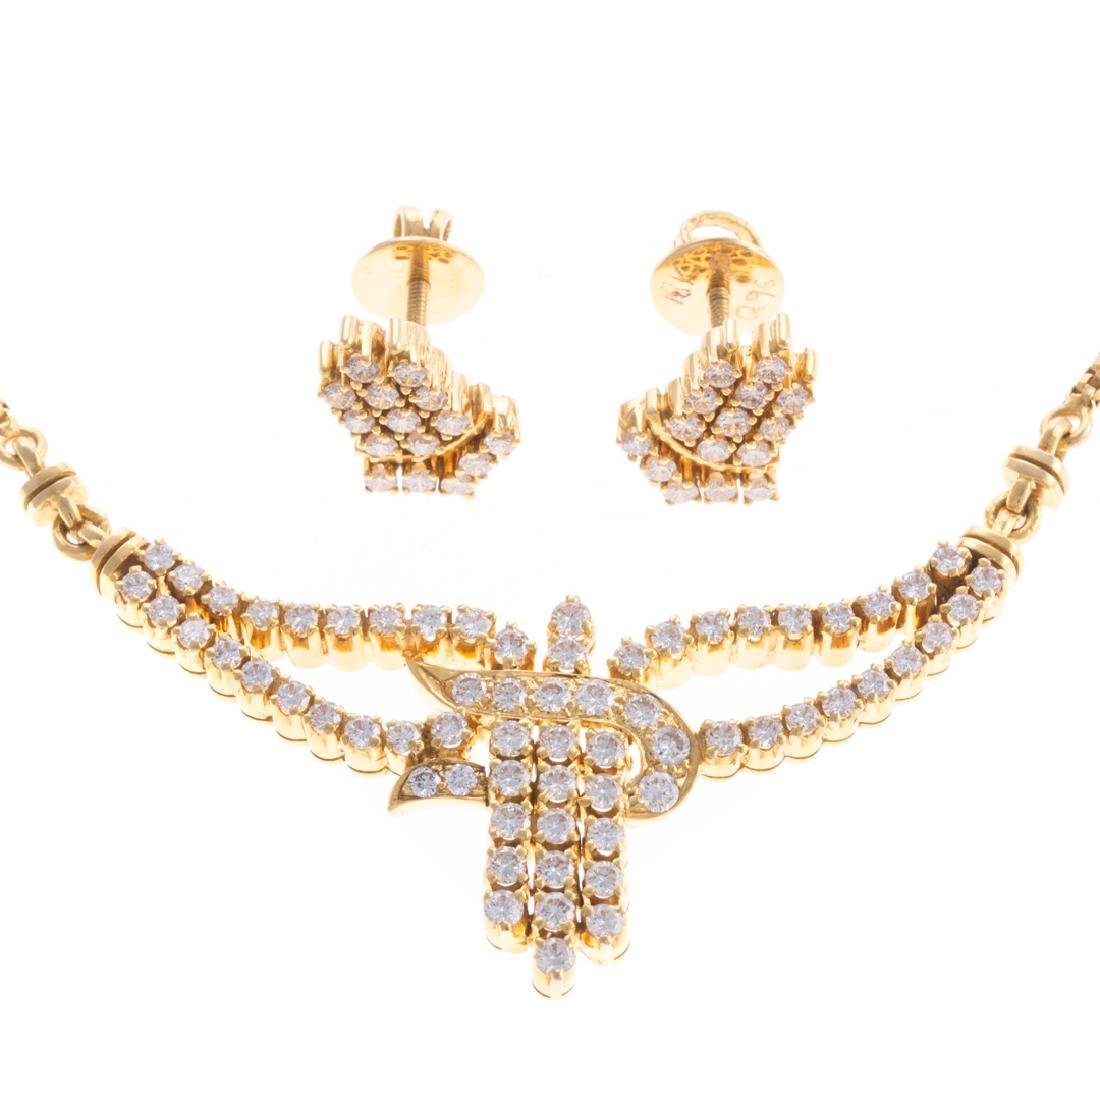 An 18K Diamond Necklace & Matching Earrings